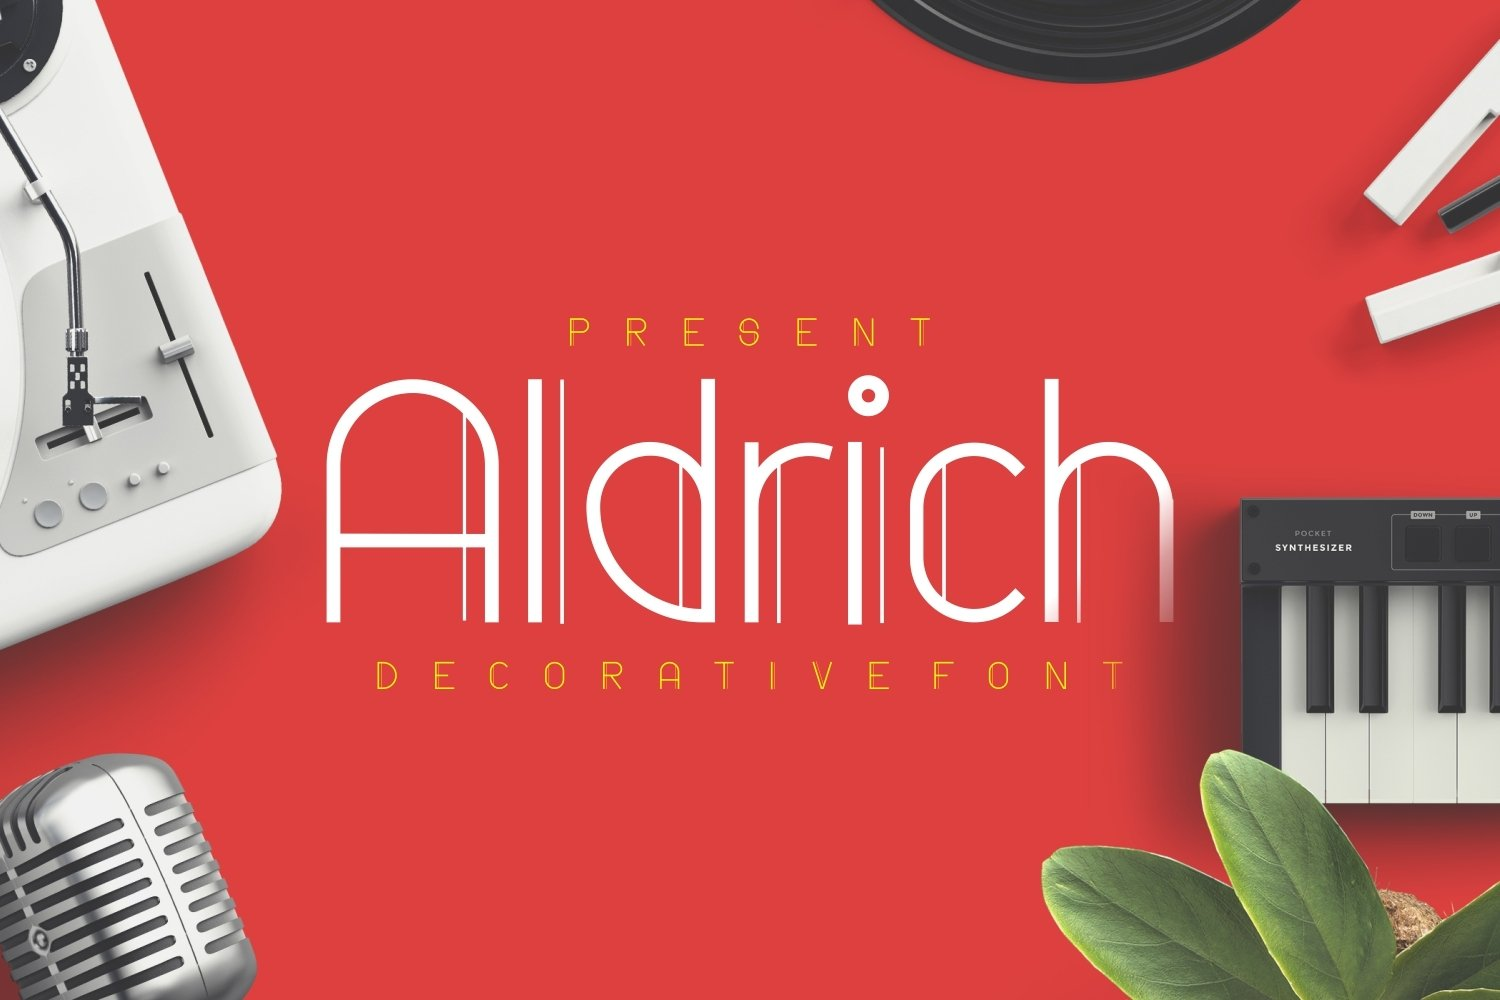 Aldrich - Decorative Display Font example image 1